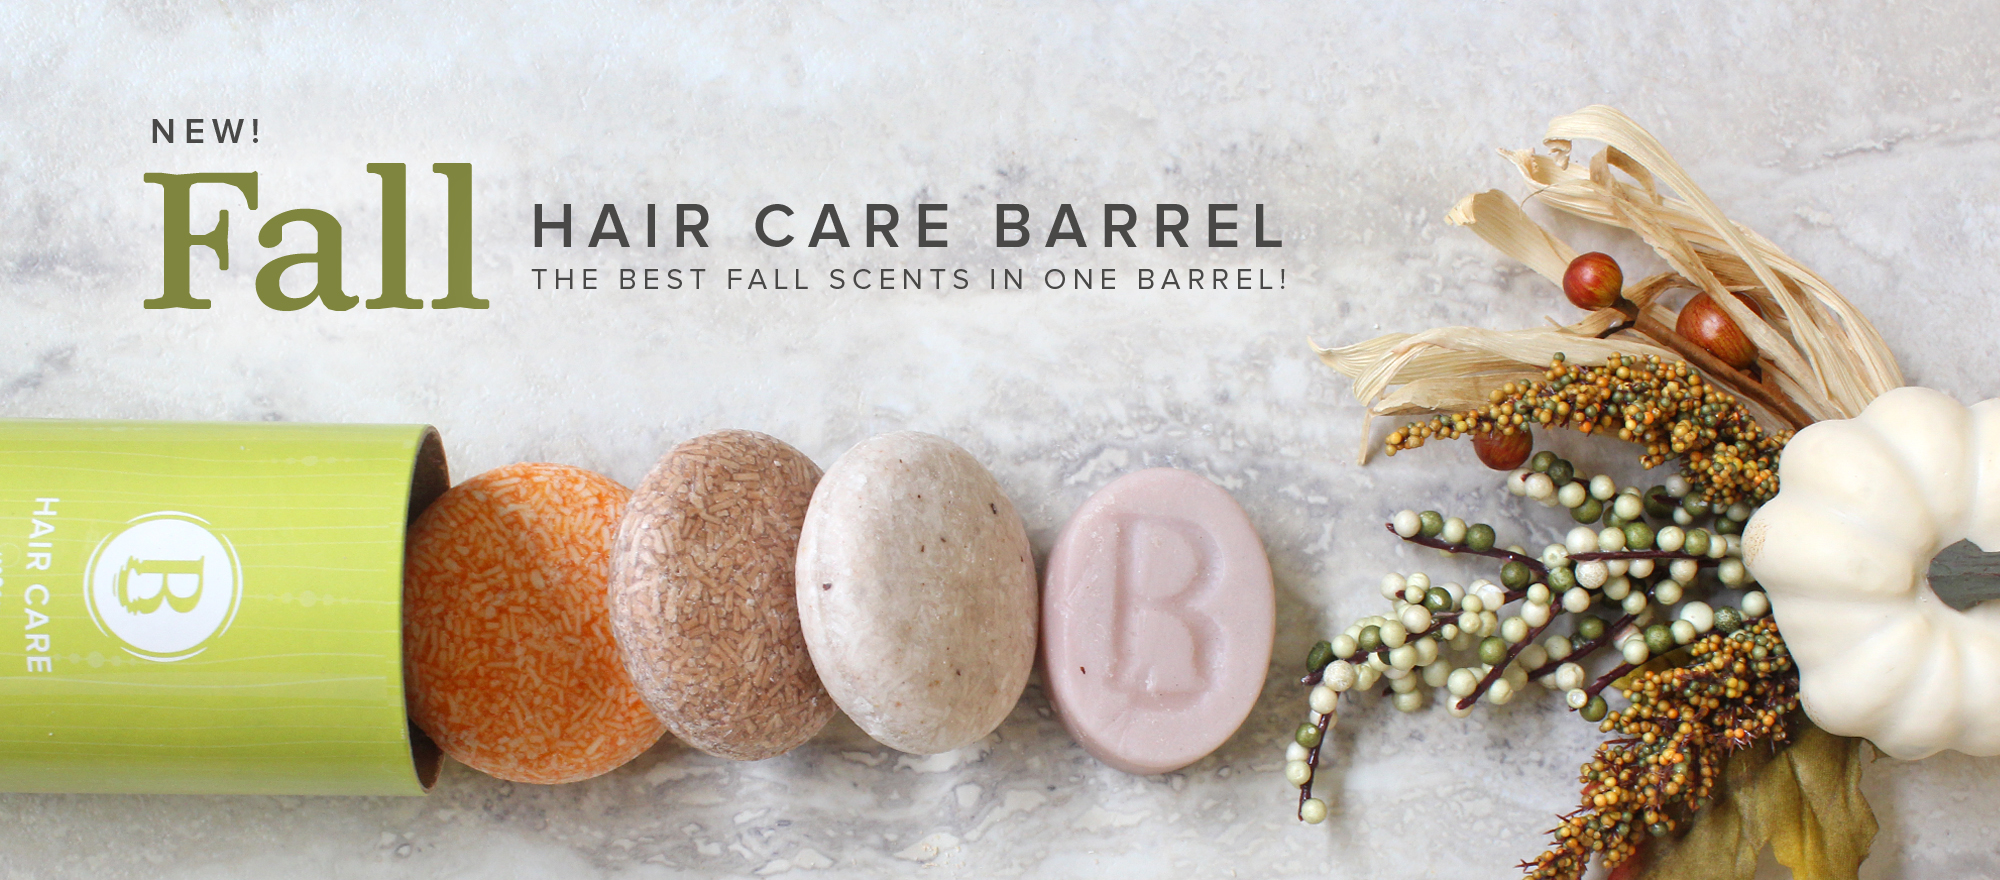 Fall Hair Care Barrel